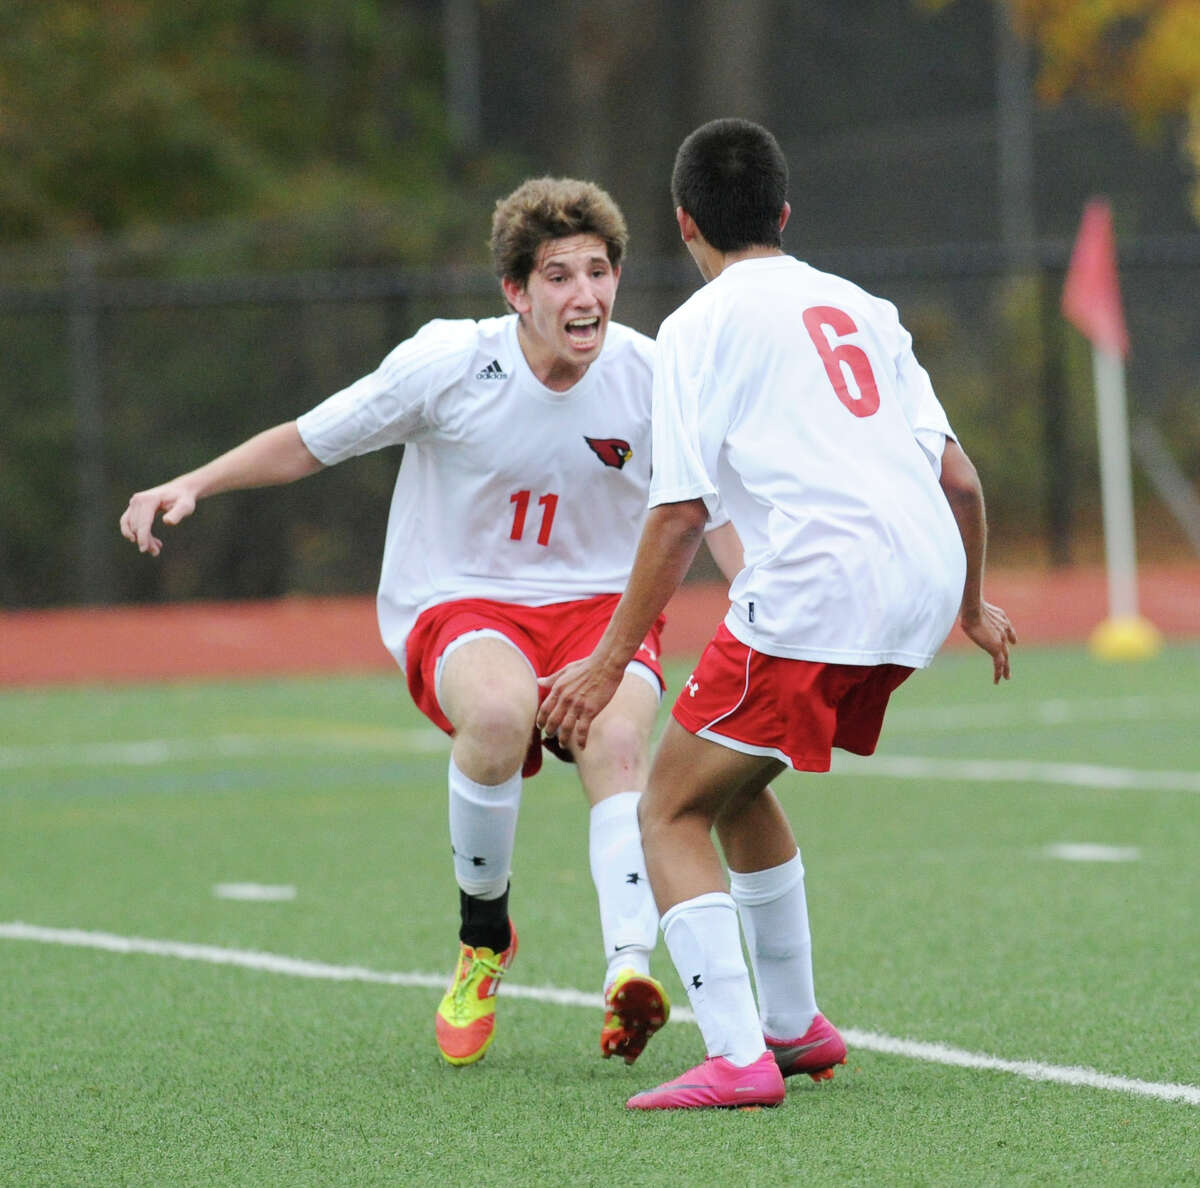 At left, Aidan Rafferty # 11 of Greenwich reacts after teammate, Joao Galbier, right, scored the second goal for his team during the second half of the FCIAC boys soccer quarterfinal match between Staples high School and Greenwich High School at Greenwich, Friday afternoon, Oct. 26, 2012. Greenwich advanced with a 3-0 win.